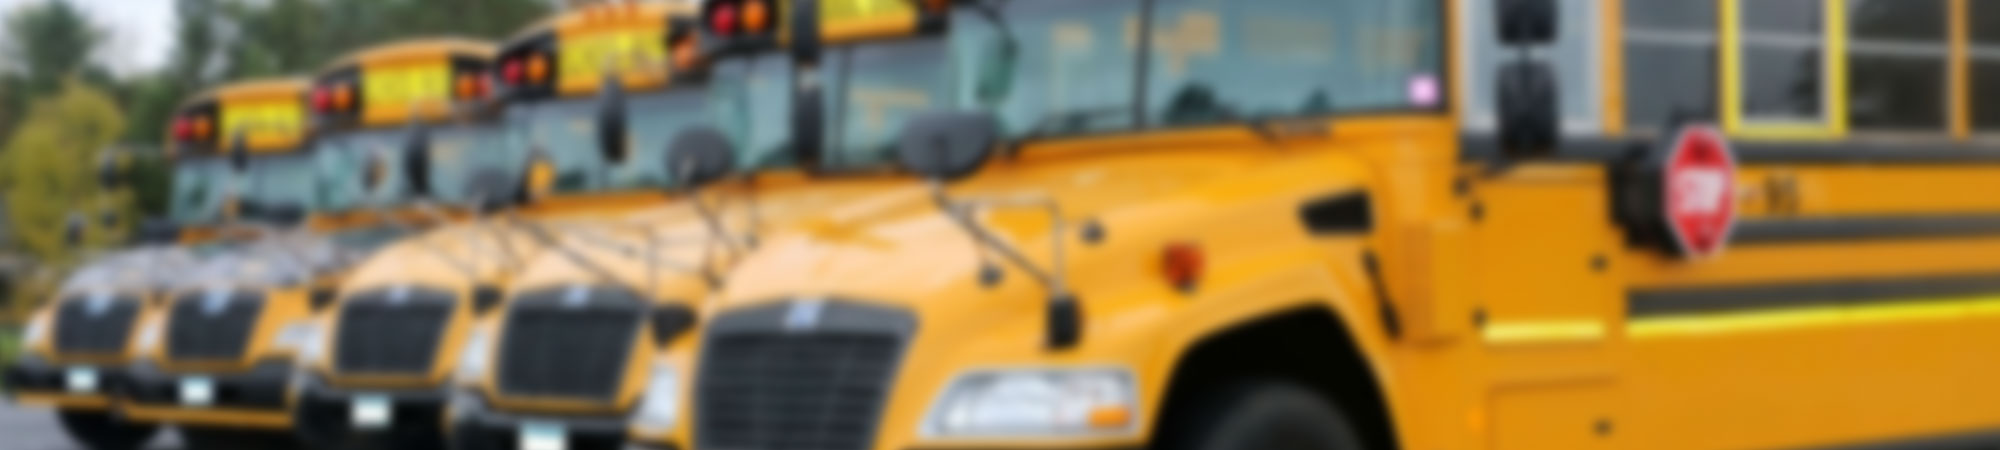 Blurred photo of yellow school buses lined up in rows